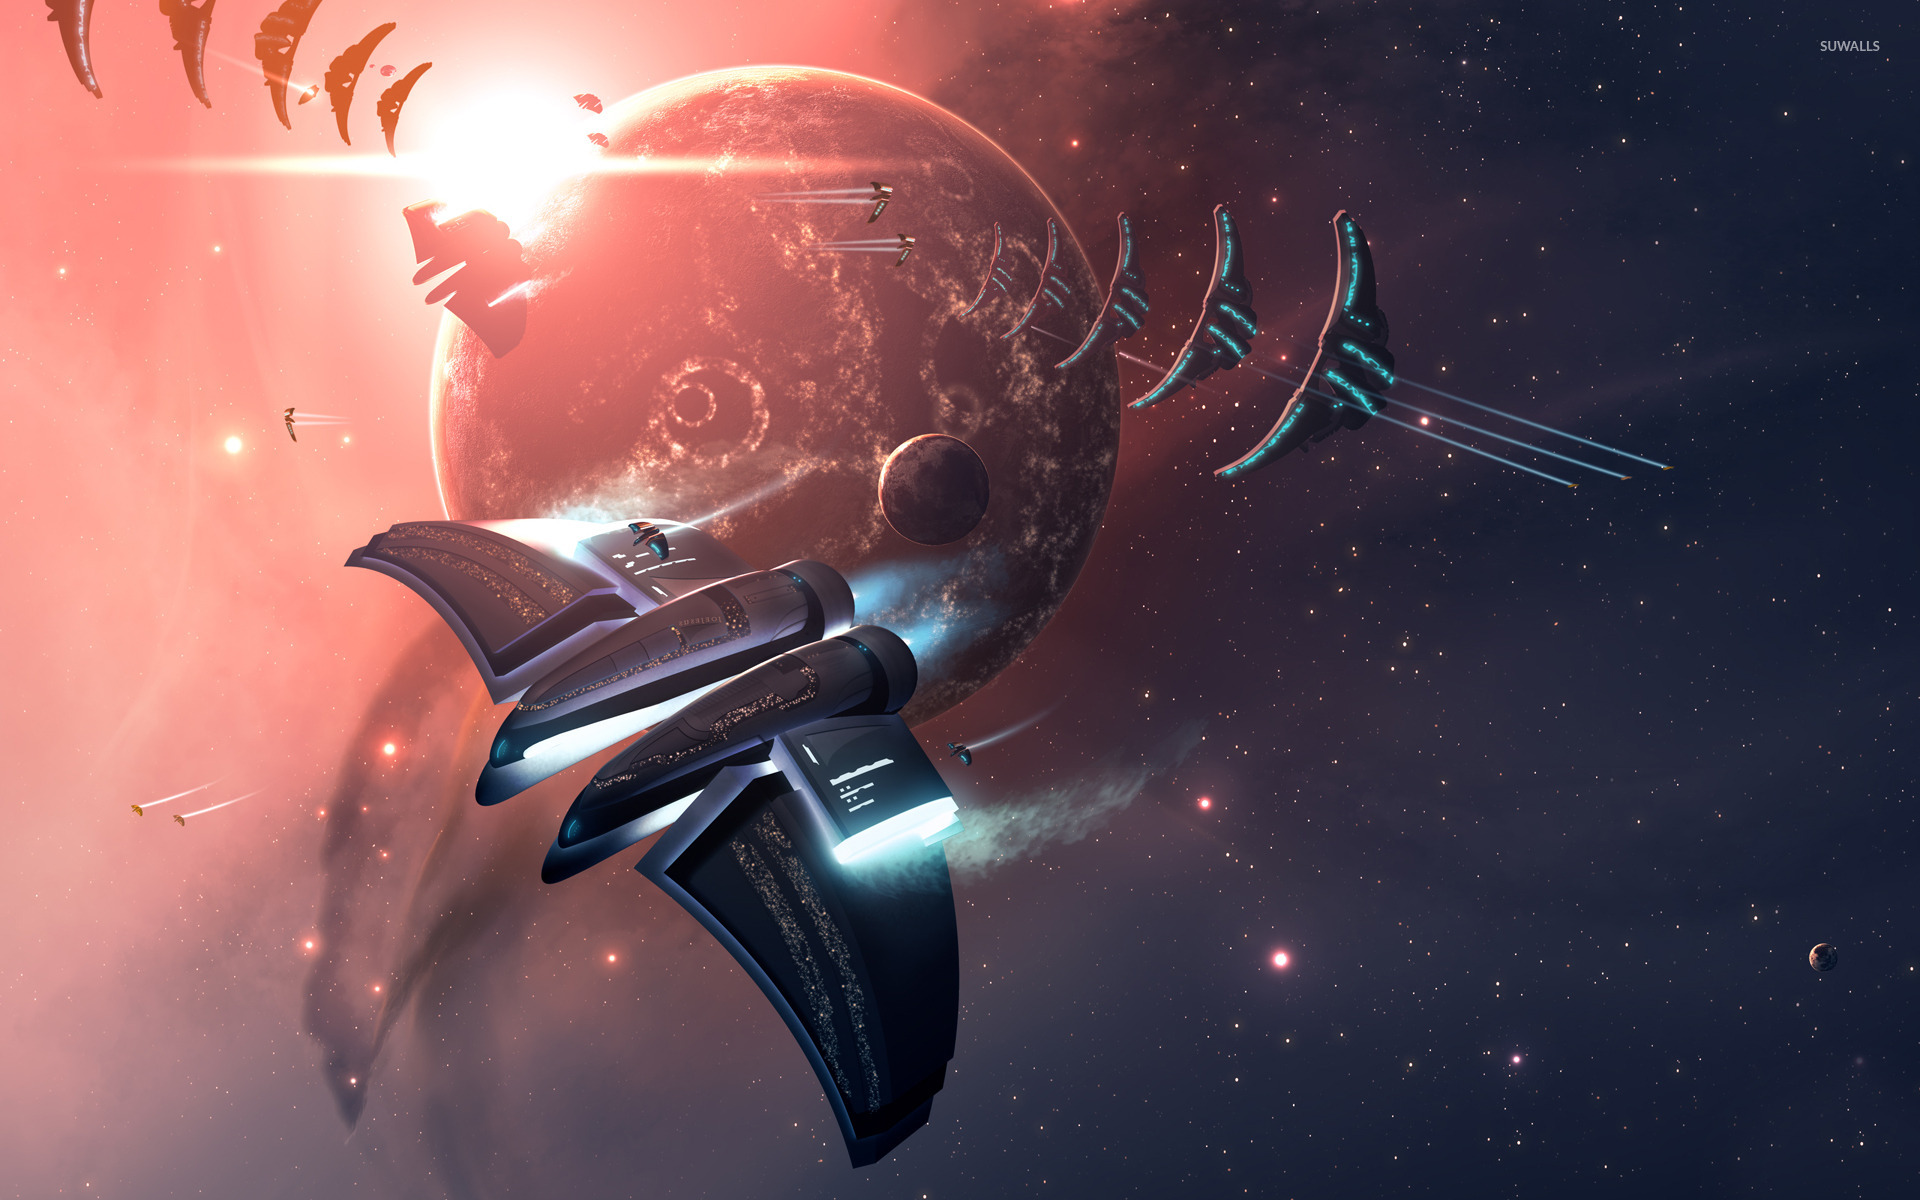 Space battle wallpaper   Fantasy wallpapers   17259 1920x1200